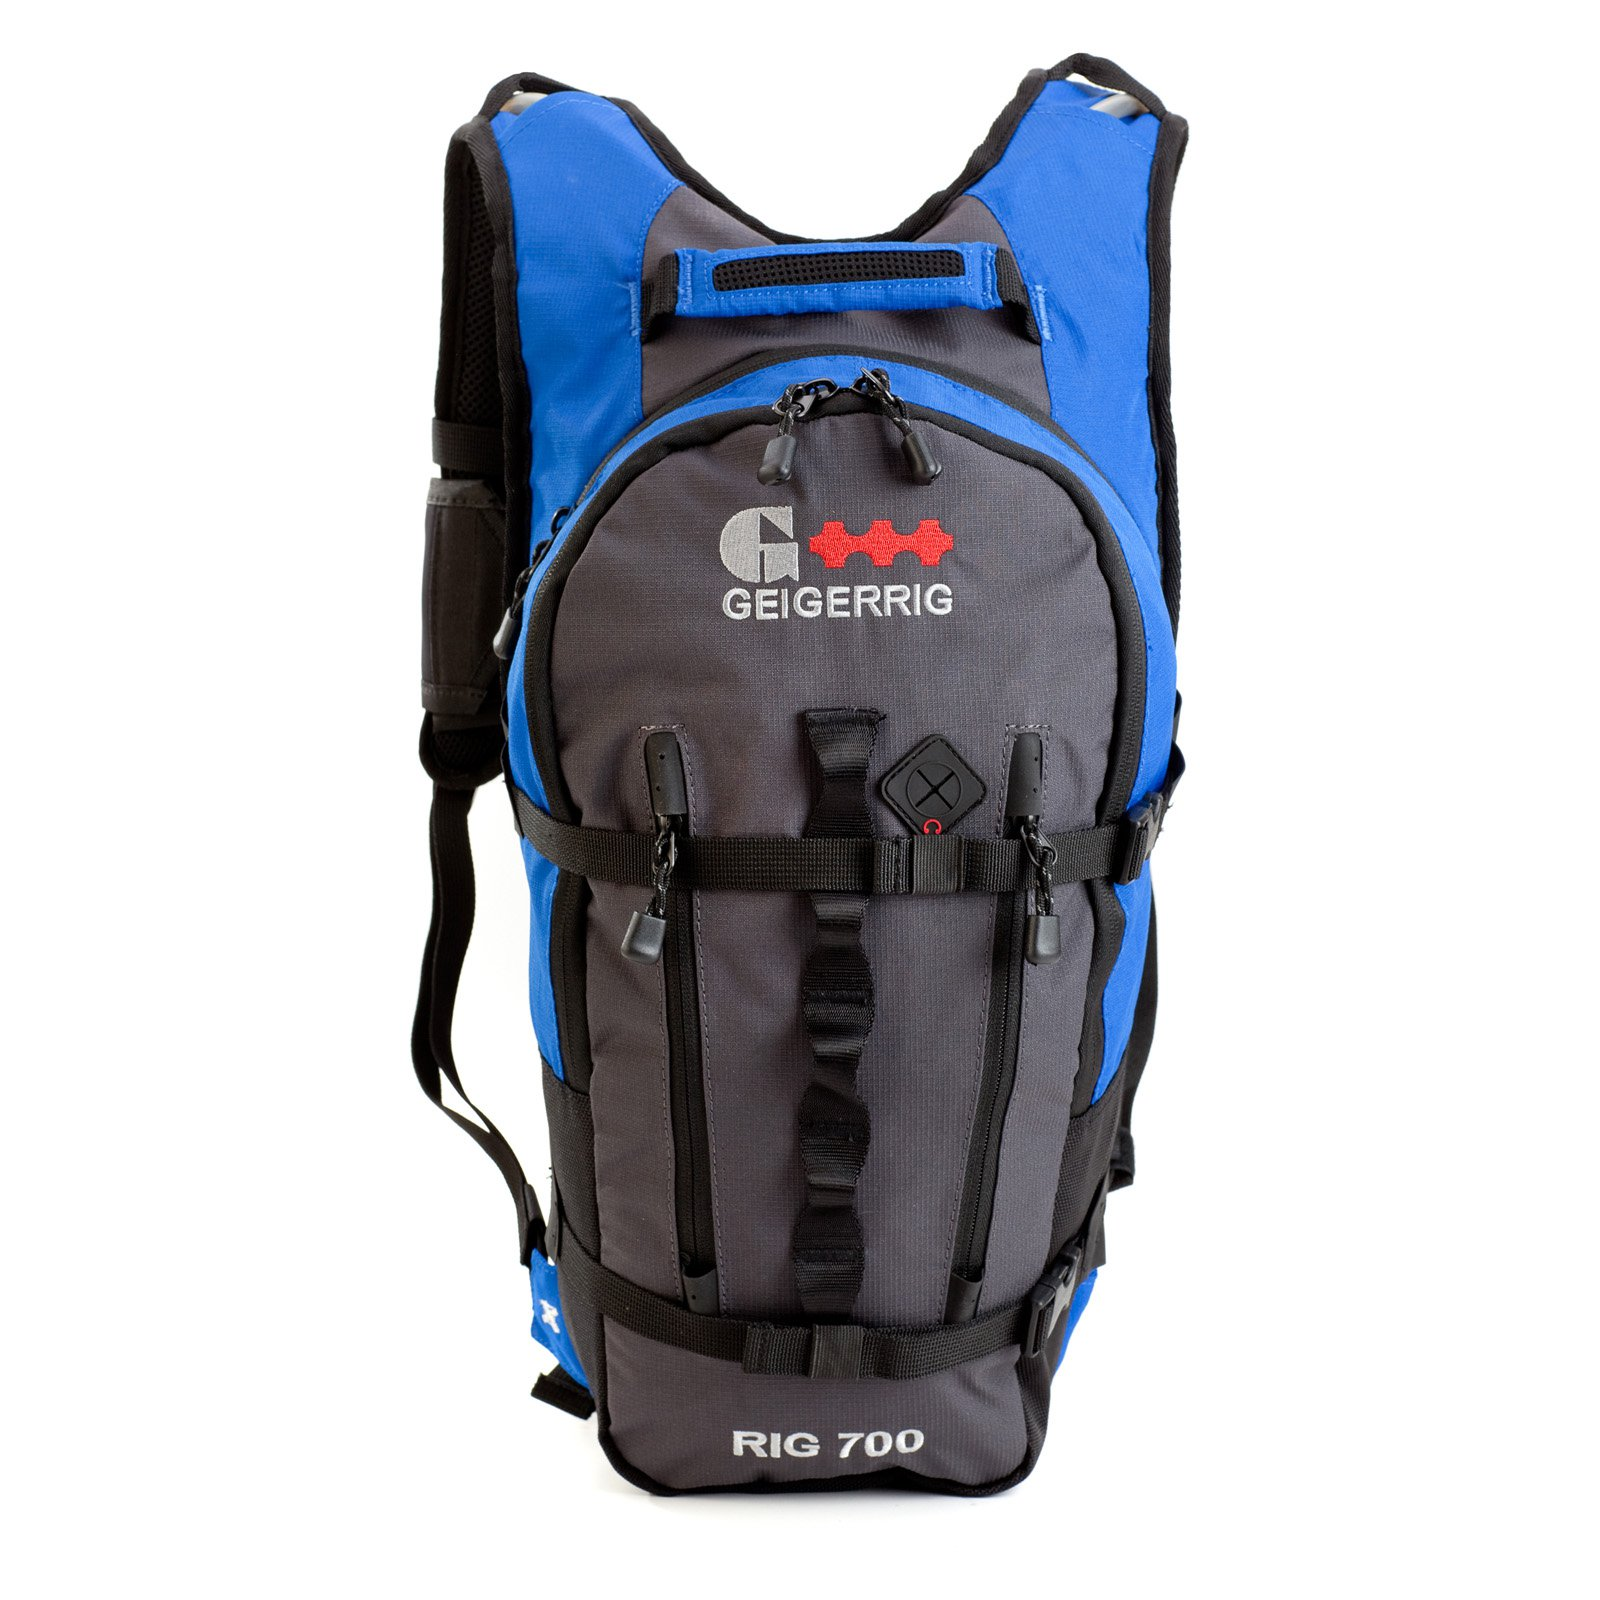 Geigerrig The Rig 700 Hydration Pack